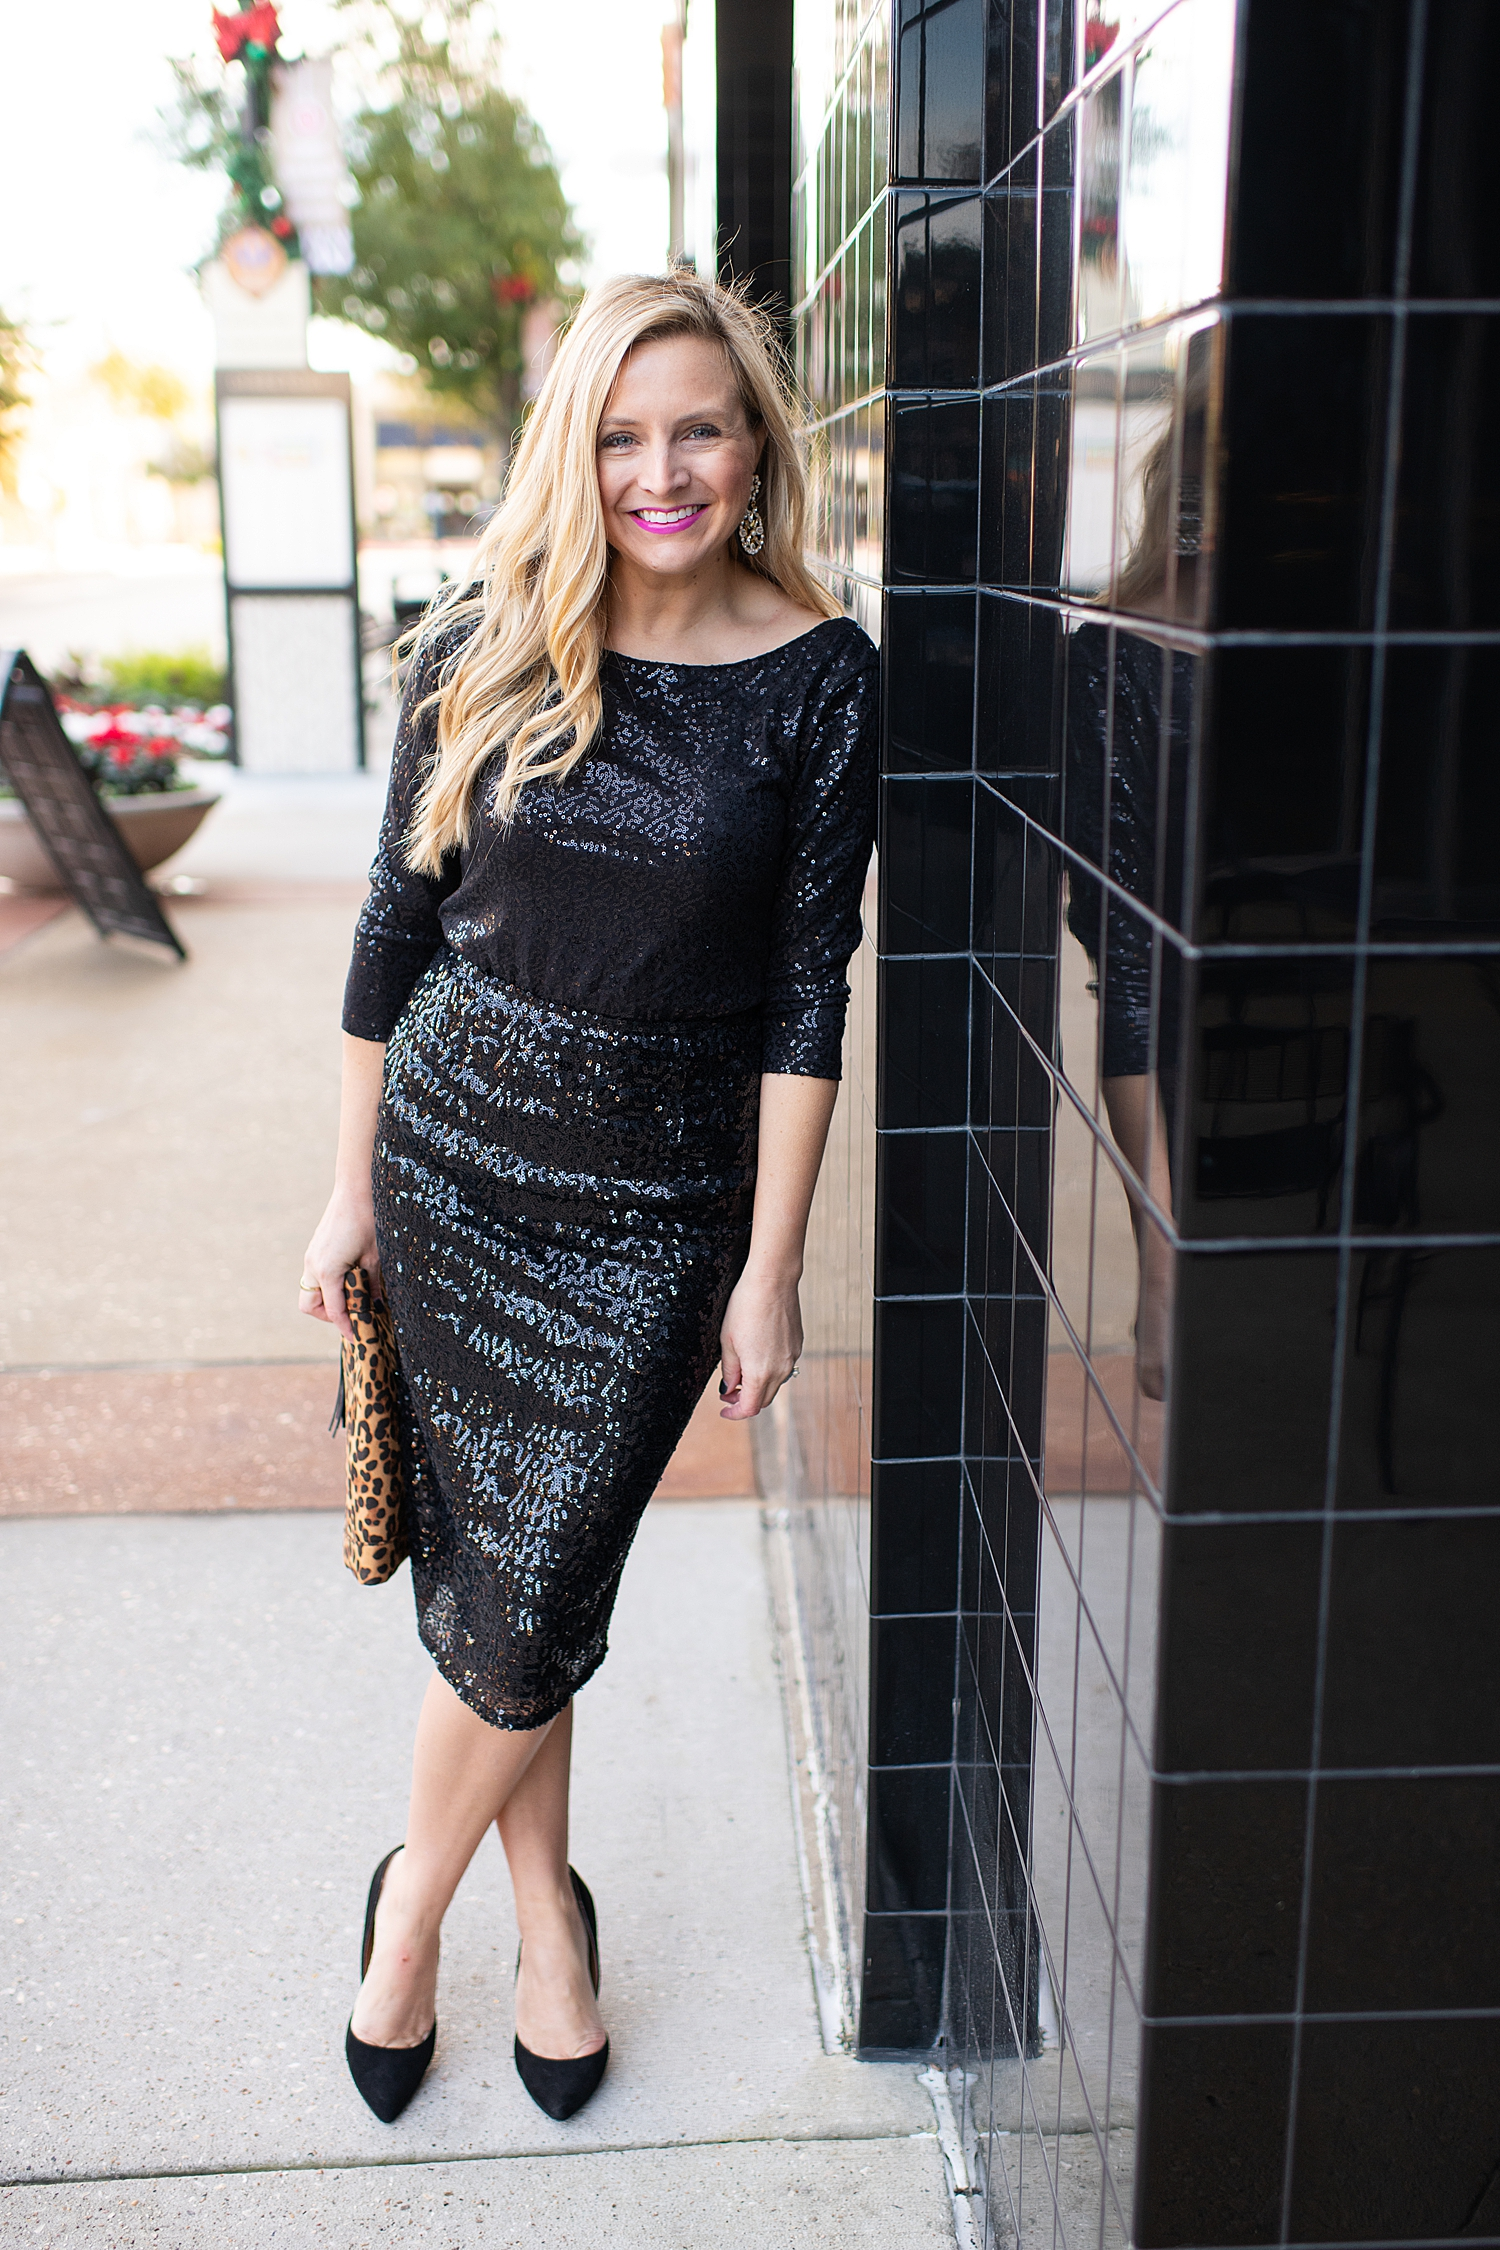 Top Houston fashion blogger, Fancy Ashley, features 7 Holiday Outfits perfect for the season: image of a woman wearing Black sequin top, sequin pencil skirt, Kate Spade earrings, leopard clutch all available at Nordstrom